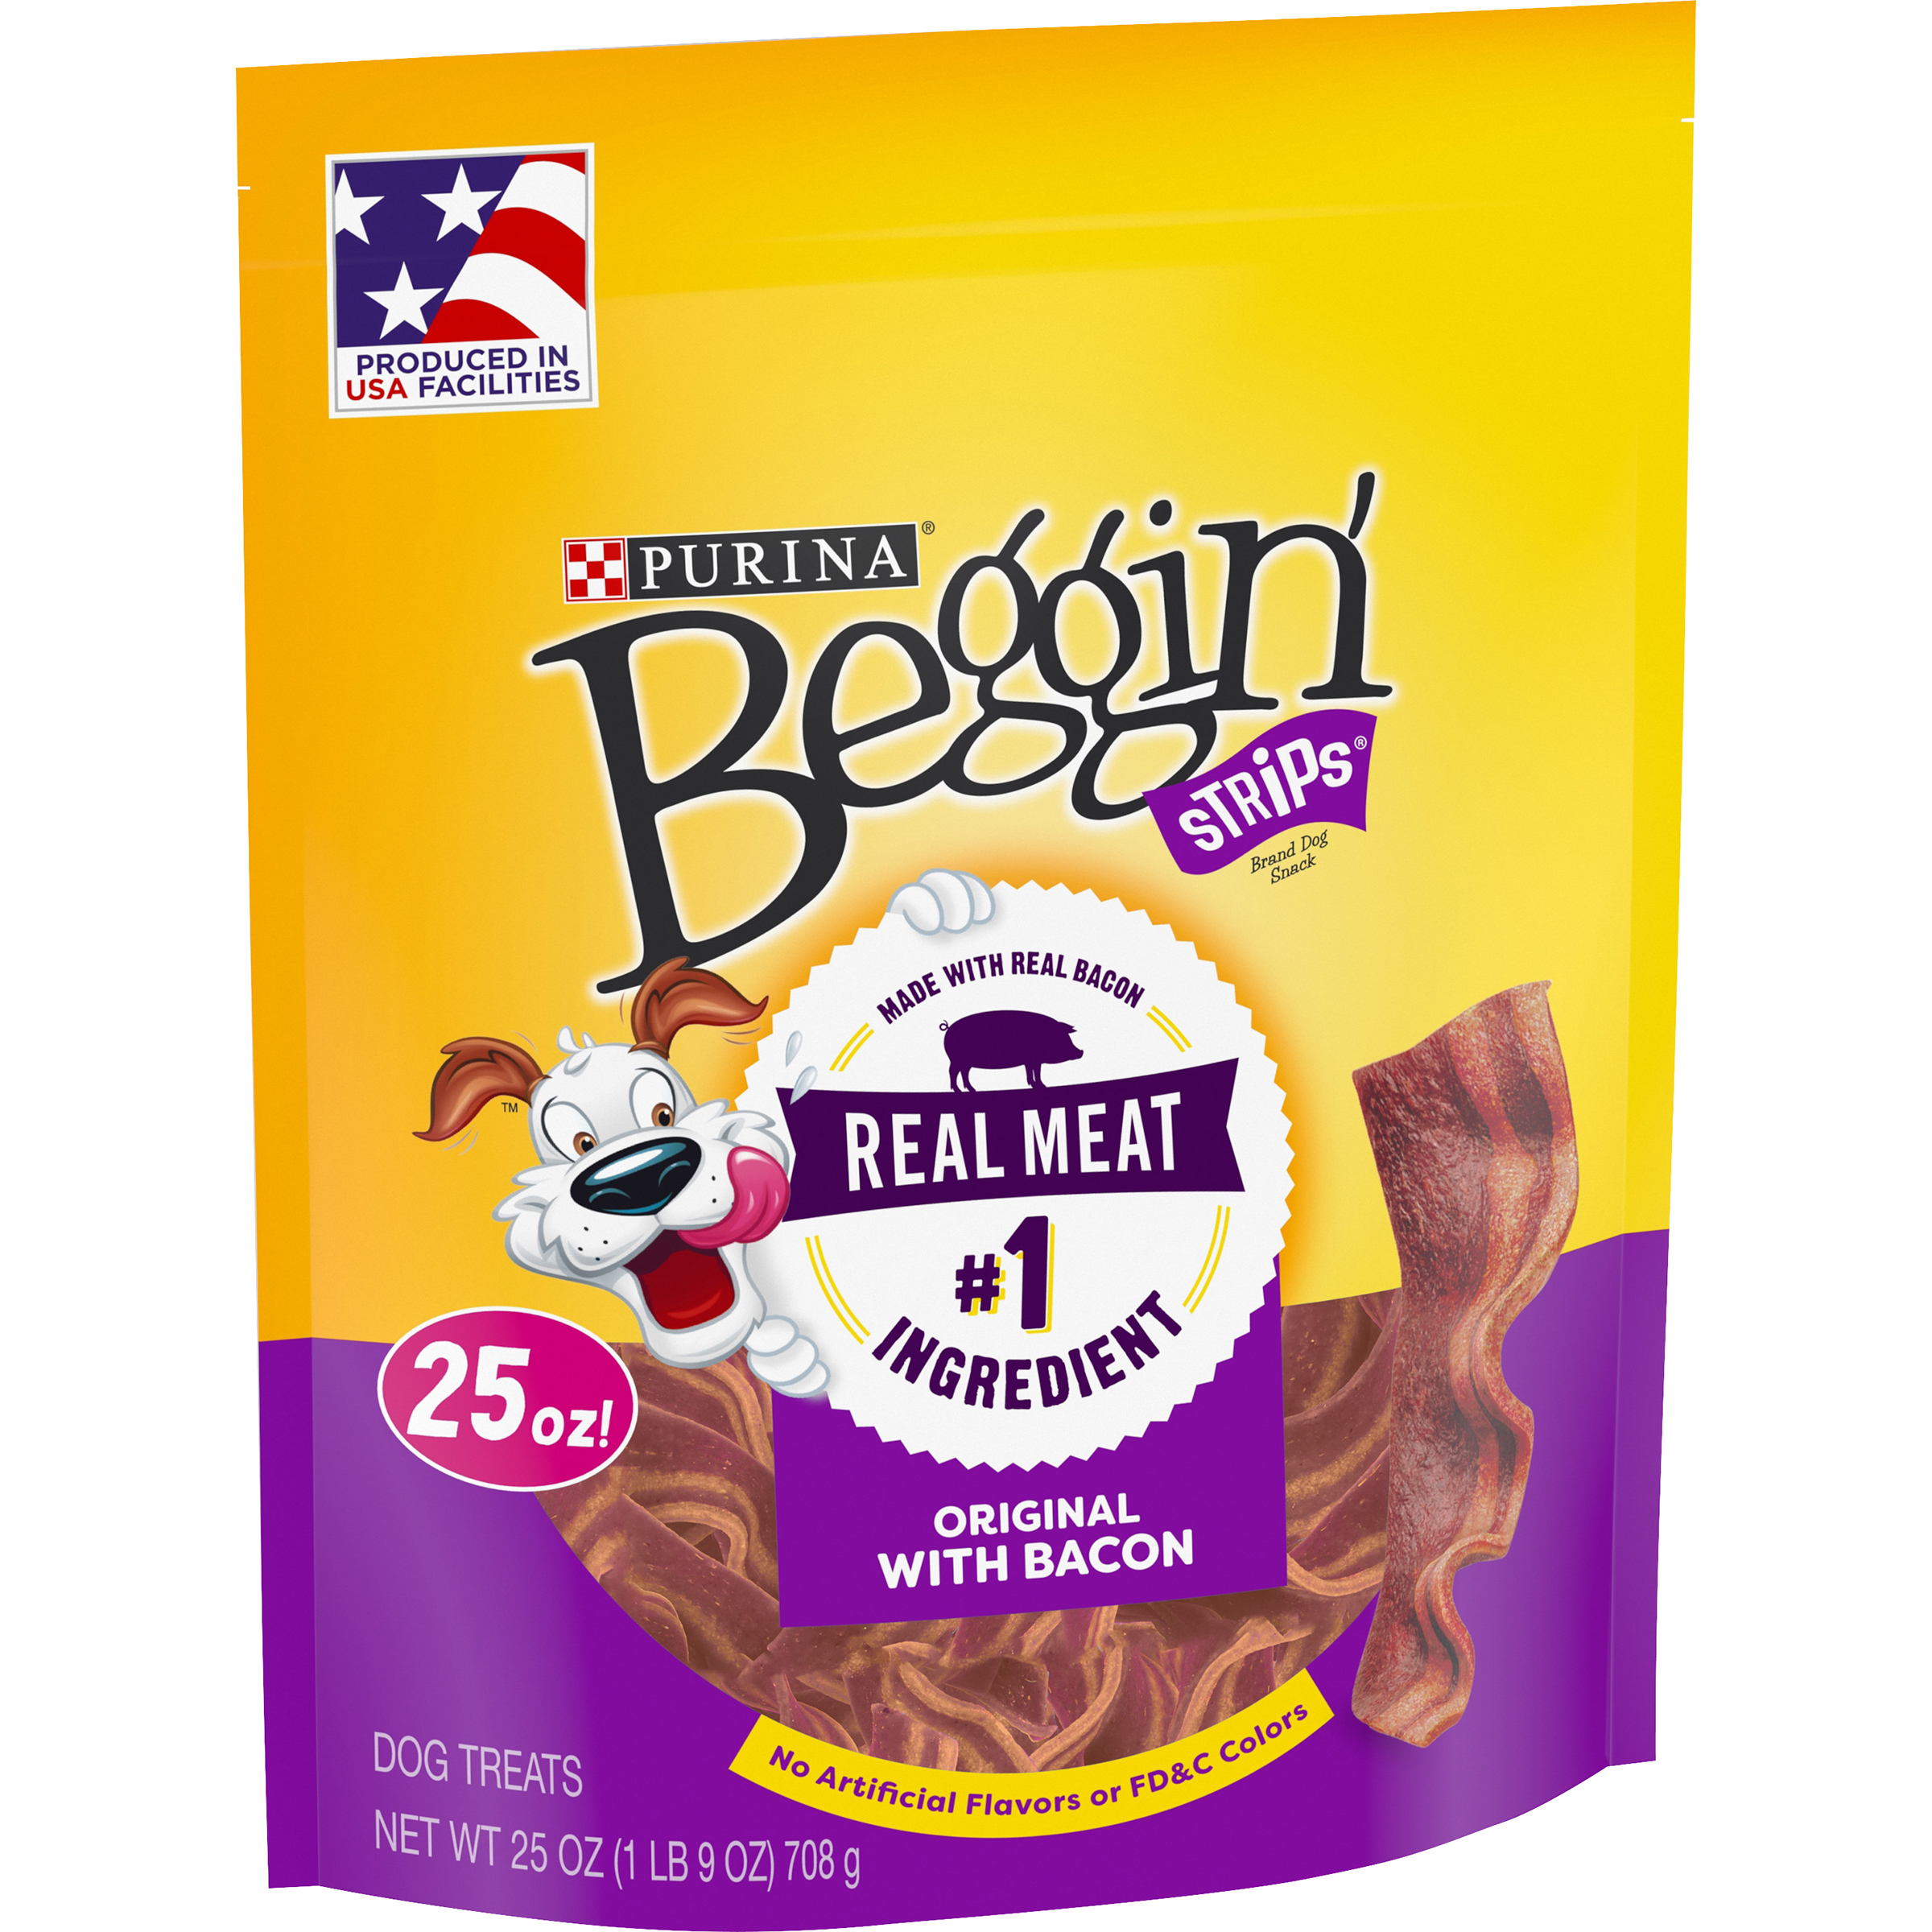 Purina Beggin' Strips Made in USA Facilities Dog Training Treats; Original With Bacon - 25 oz. Pouch